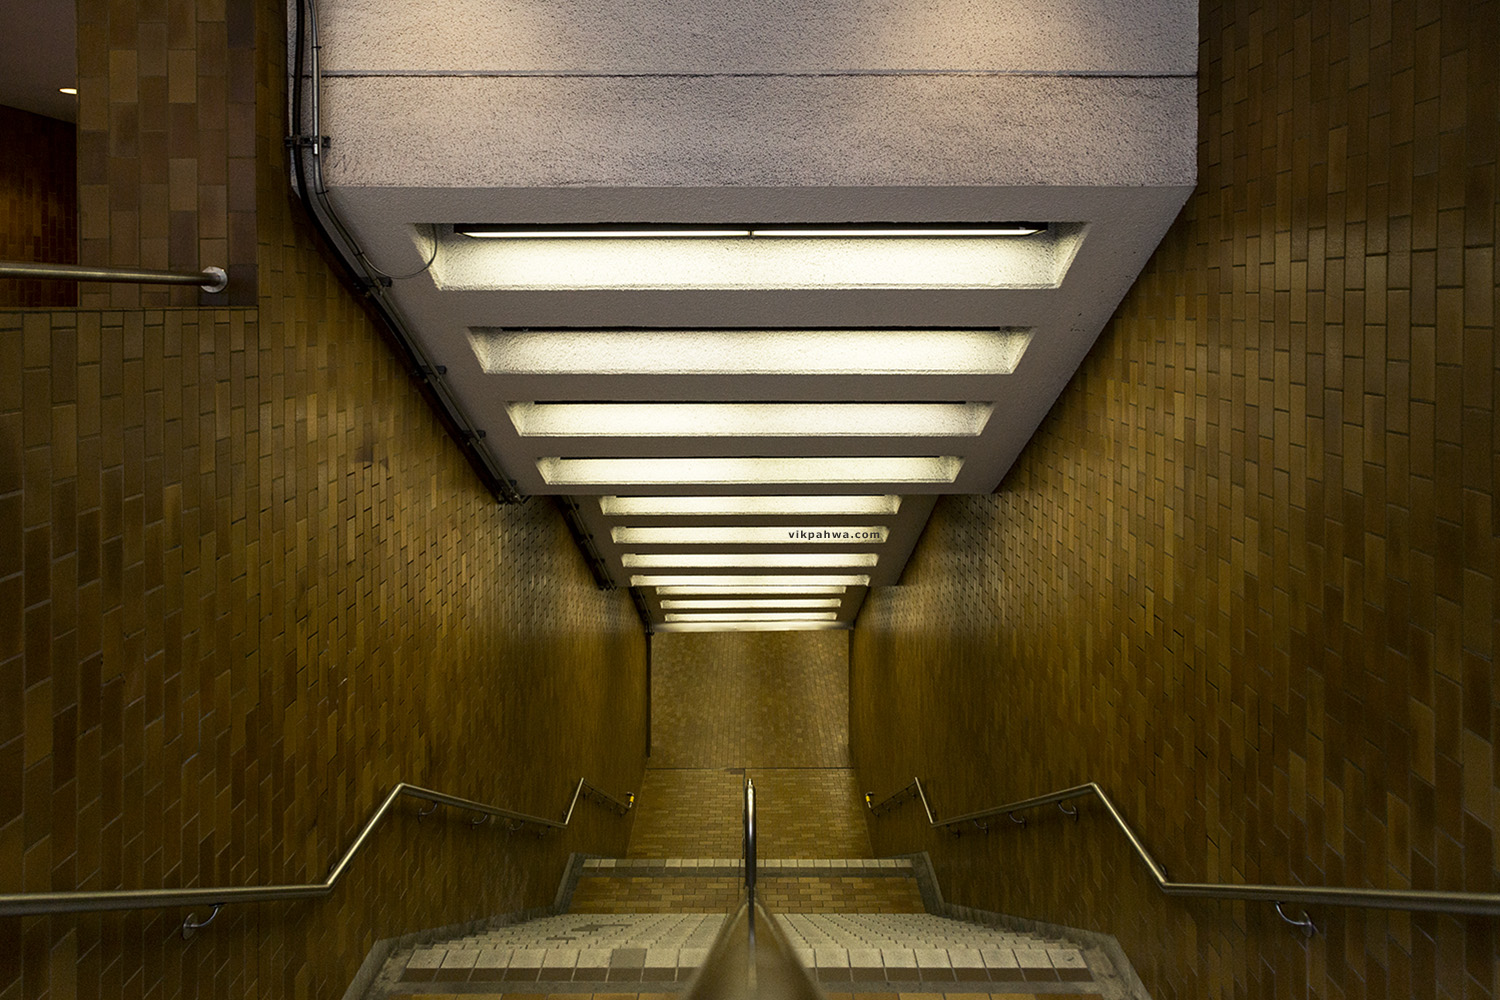 20161030. Heading in to the underground at Spadina Station.